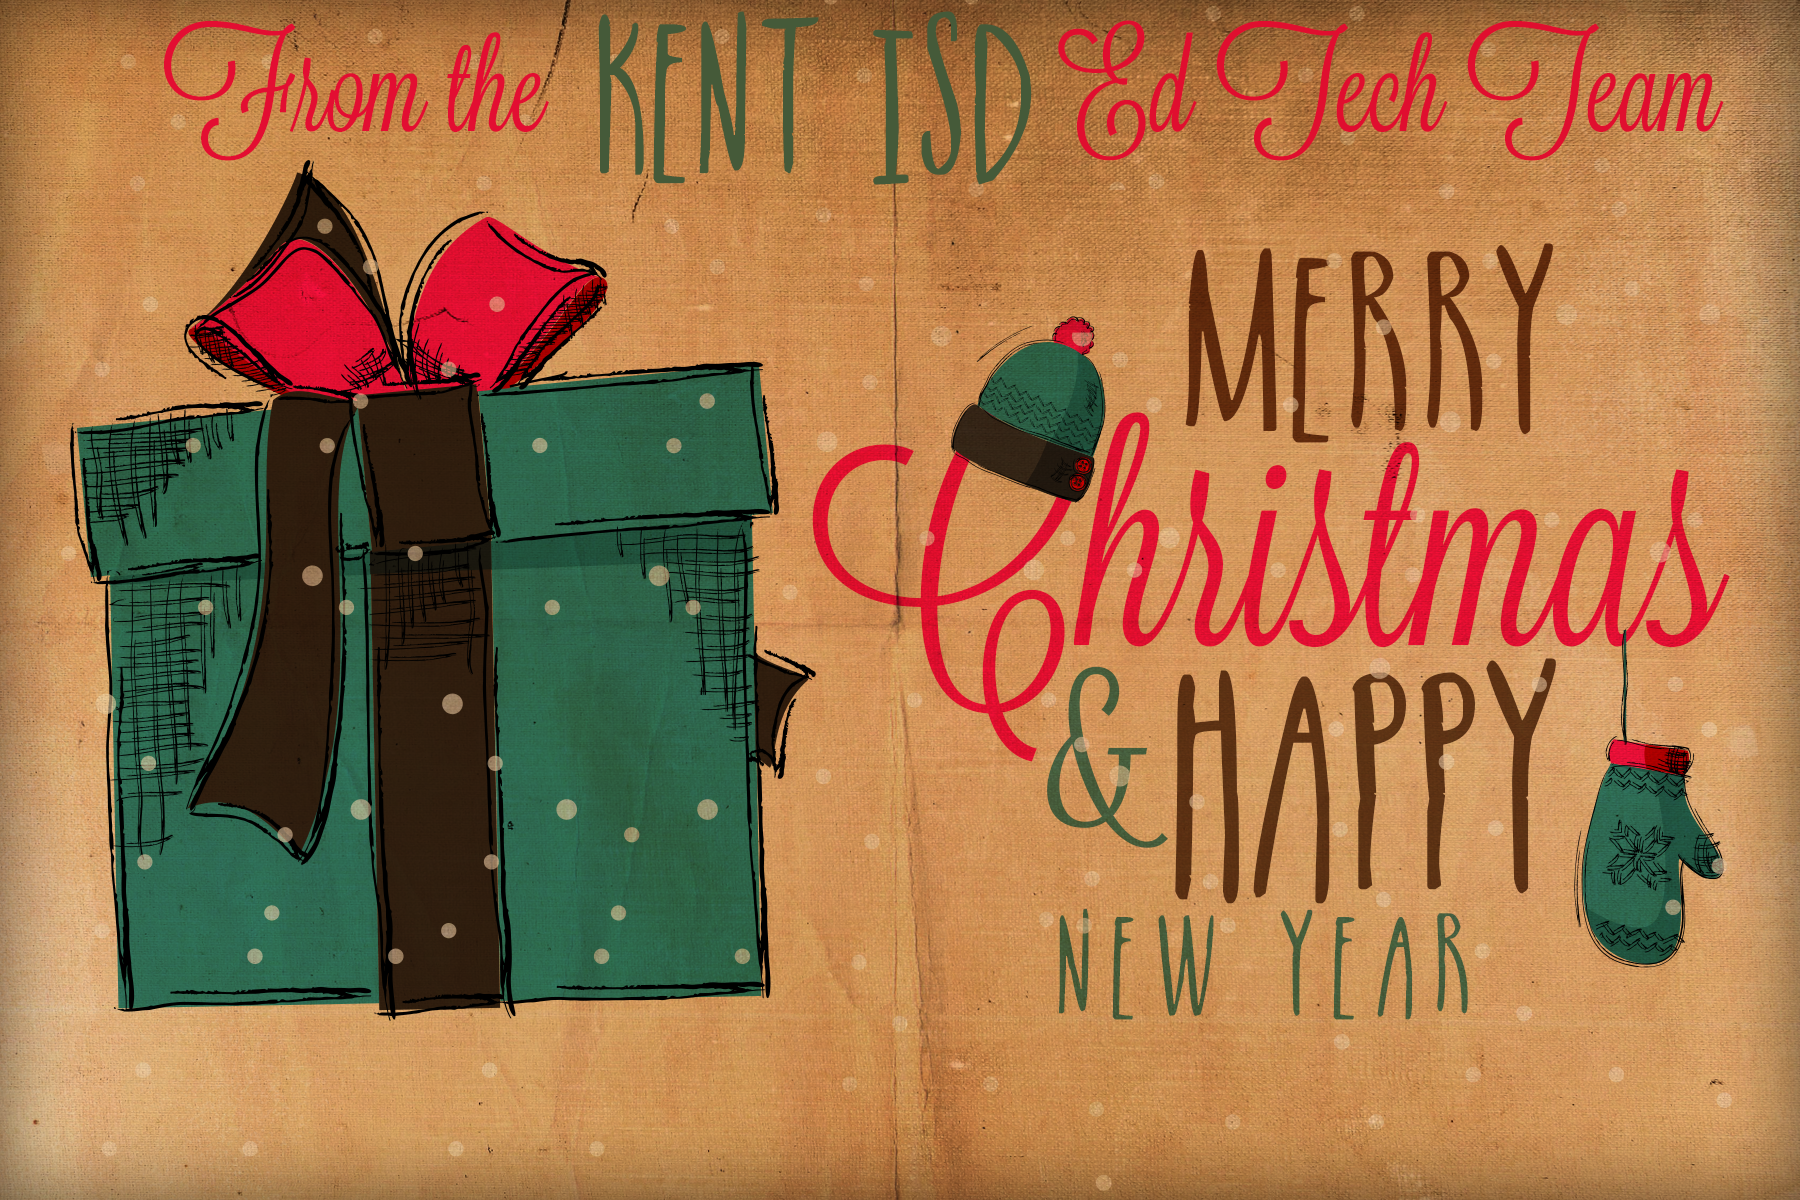 We Wish You A Merry Christmas And A Happy New Year Kent Isd